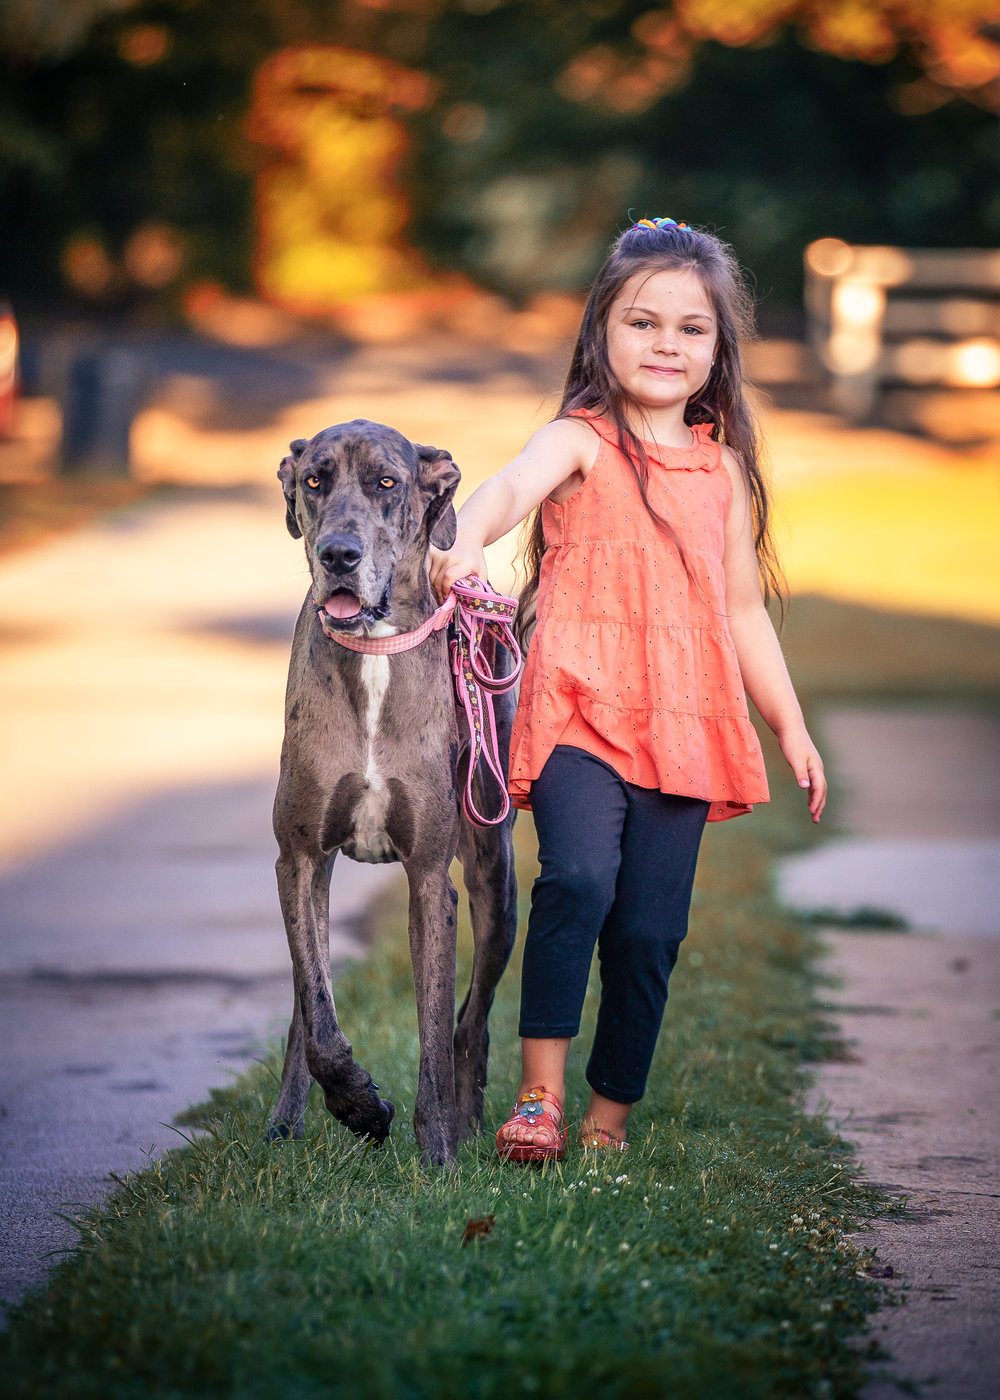 Olivia (6) enjoys a walk with Lucy (2) at Allandale in Kingsport, TN - See more of their pictures at  https://tinyurl.com/yd3fp856